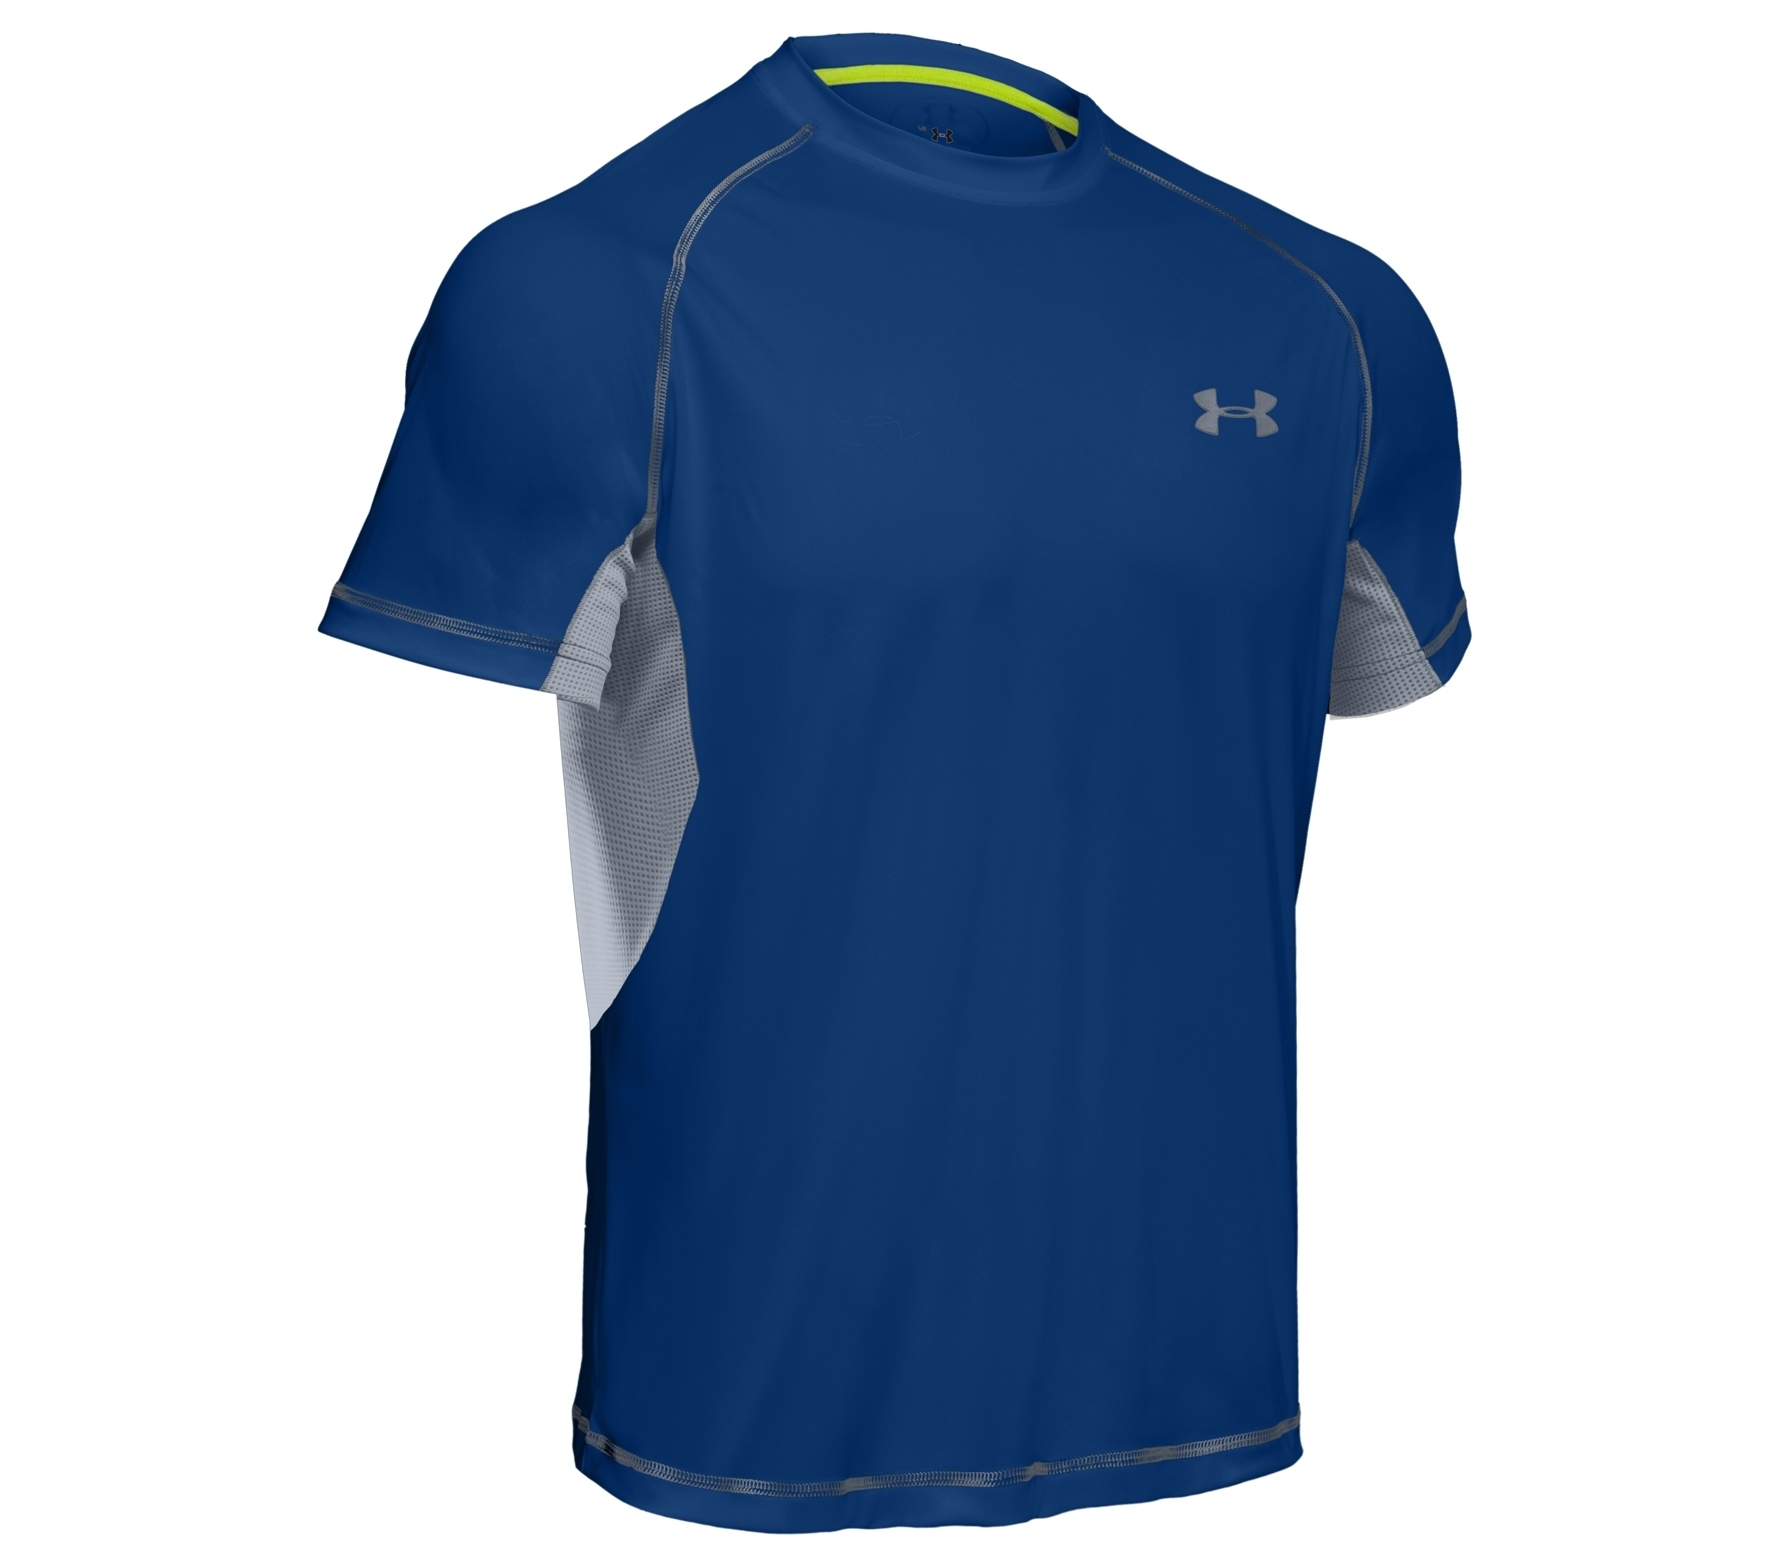 under armour t shirt heatgear catalyst blue default